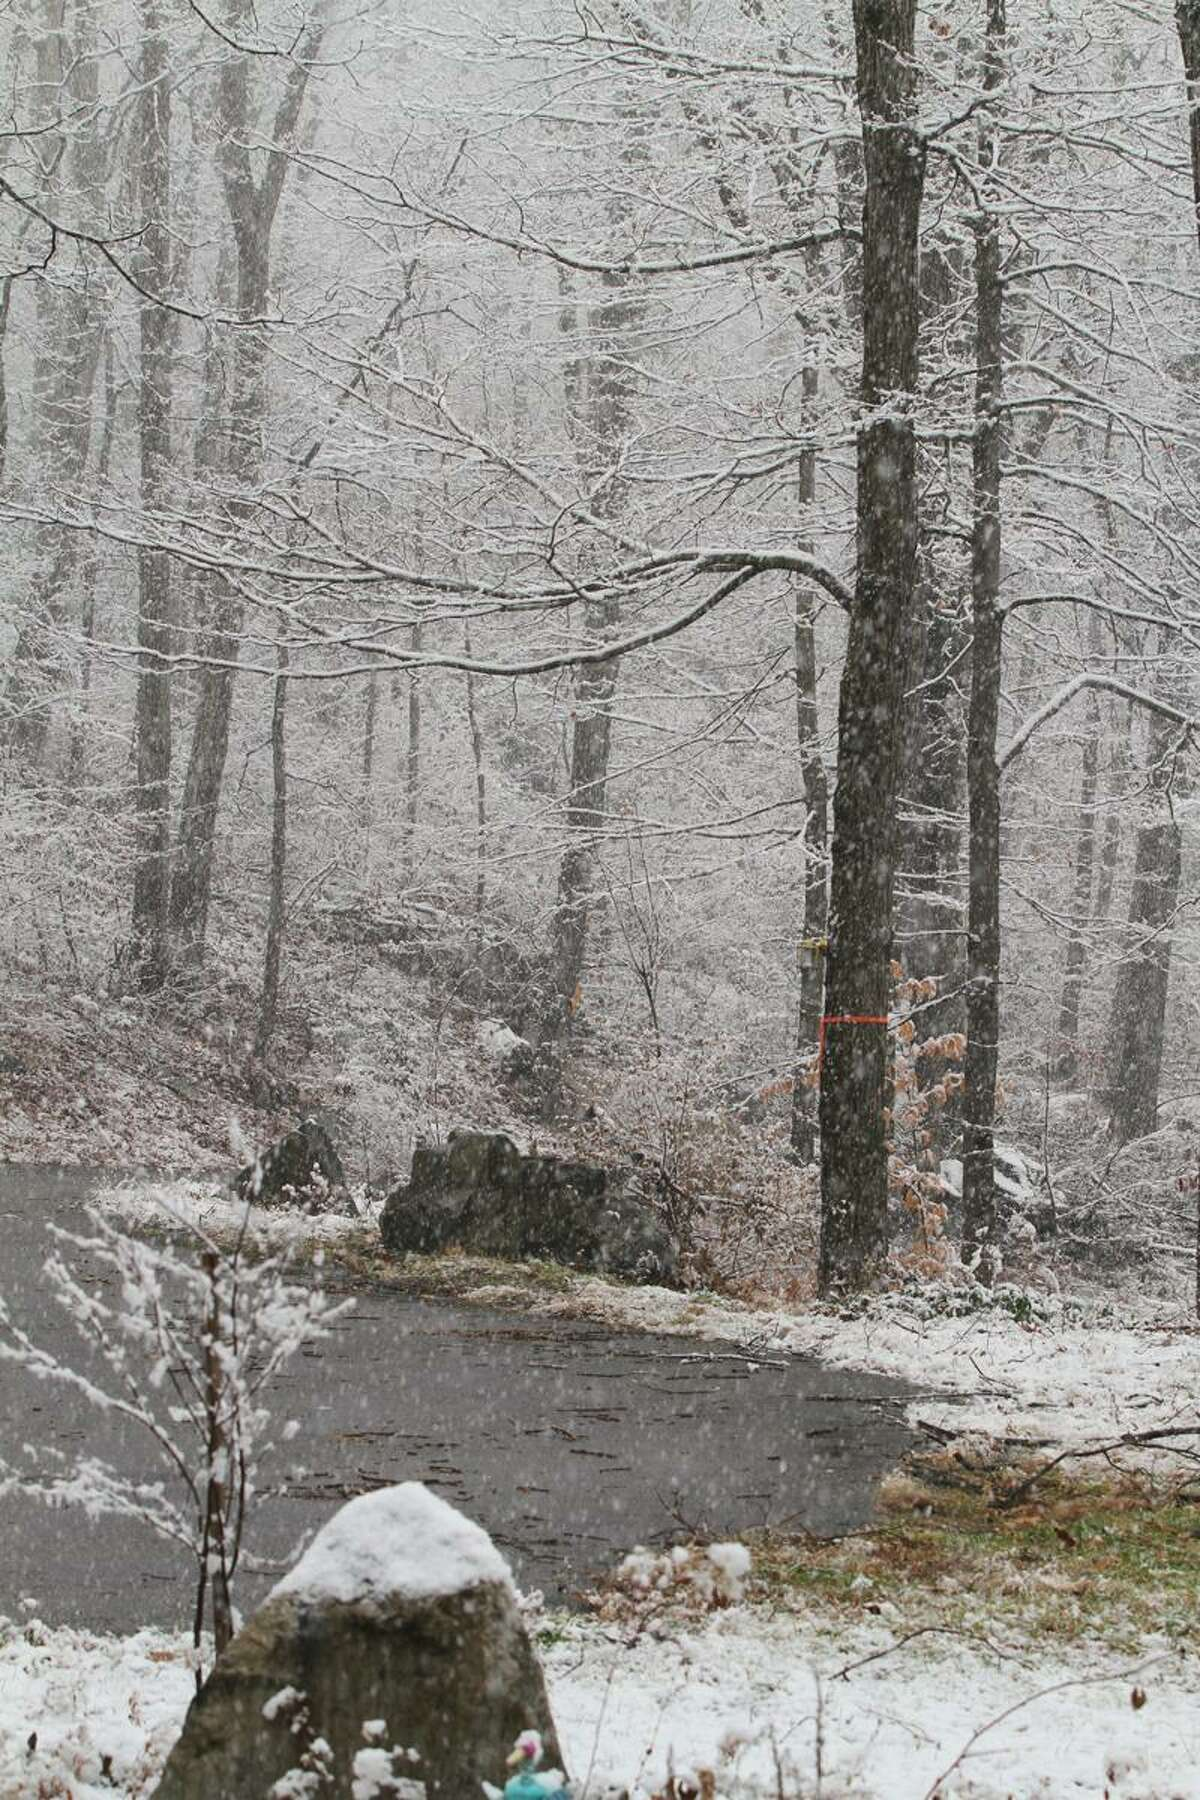 Marianne Killackey, who contributed this photo, says the snow is